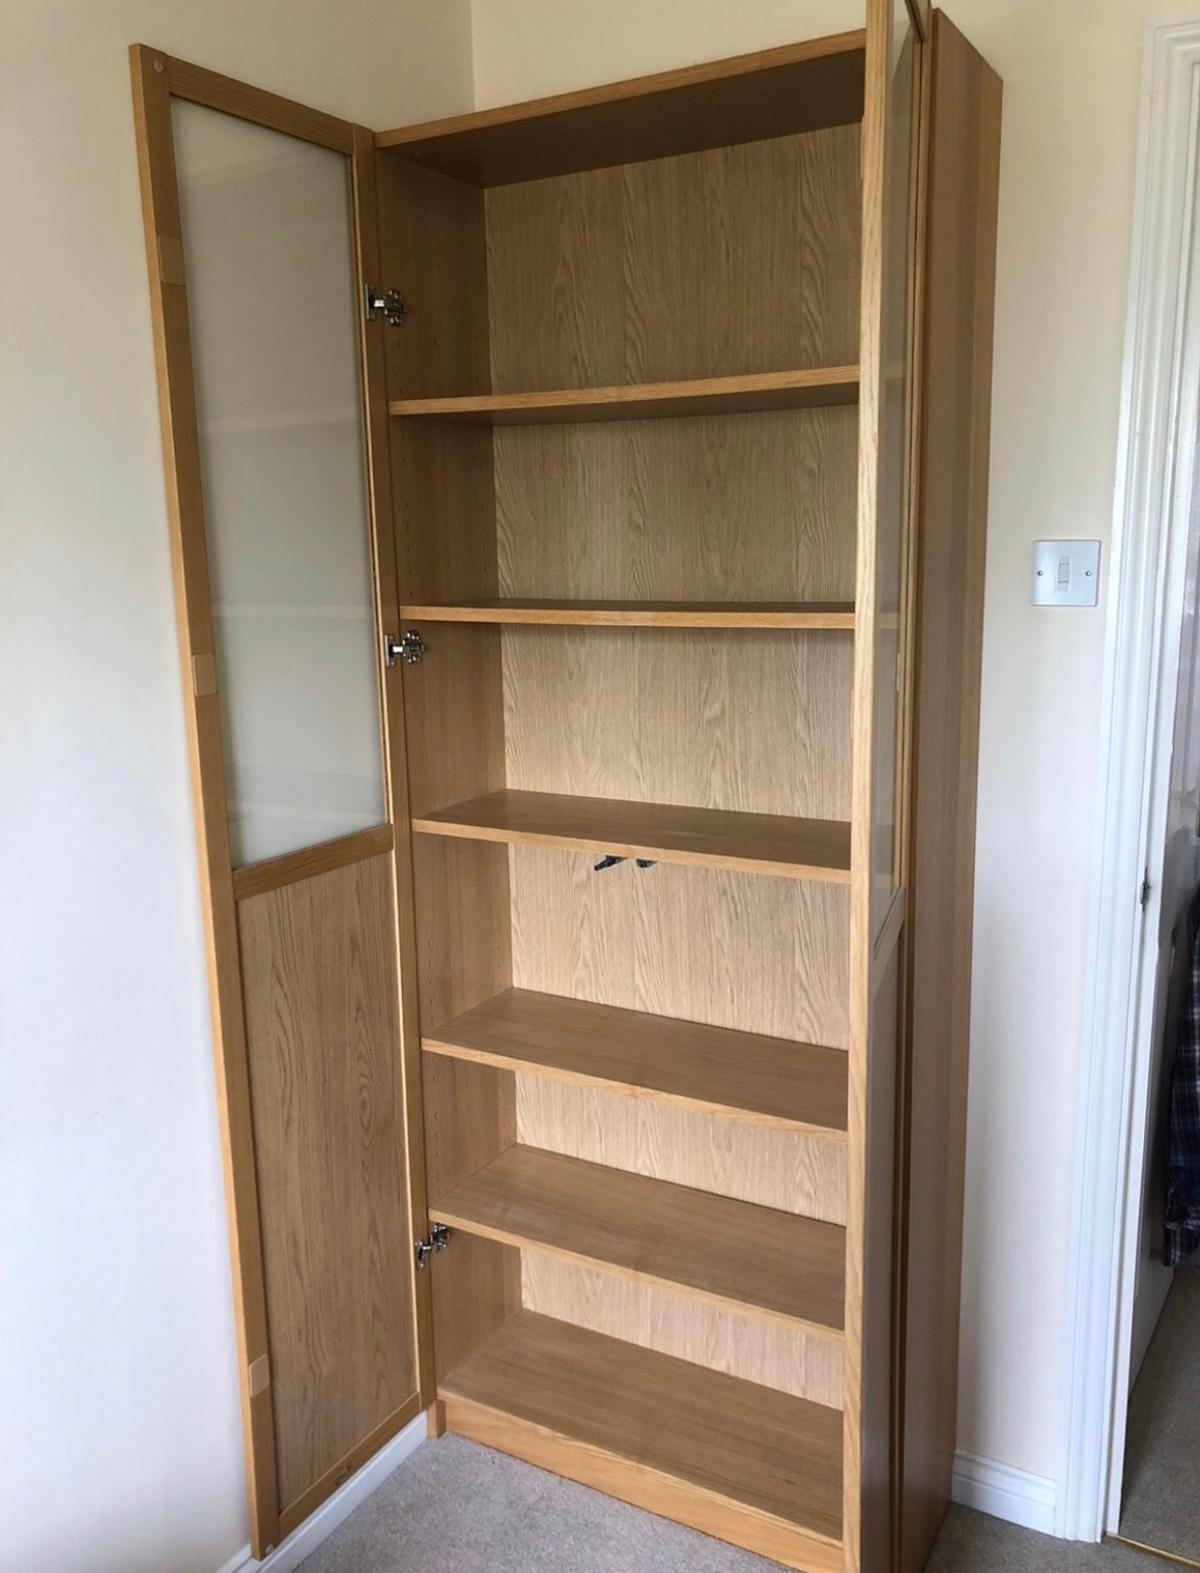 Ikea Billy Bookcase With Glass Panel Doors